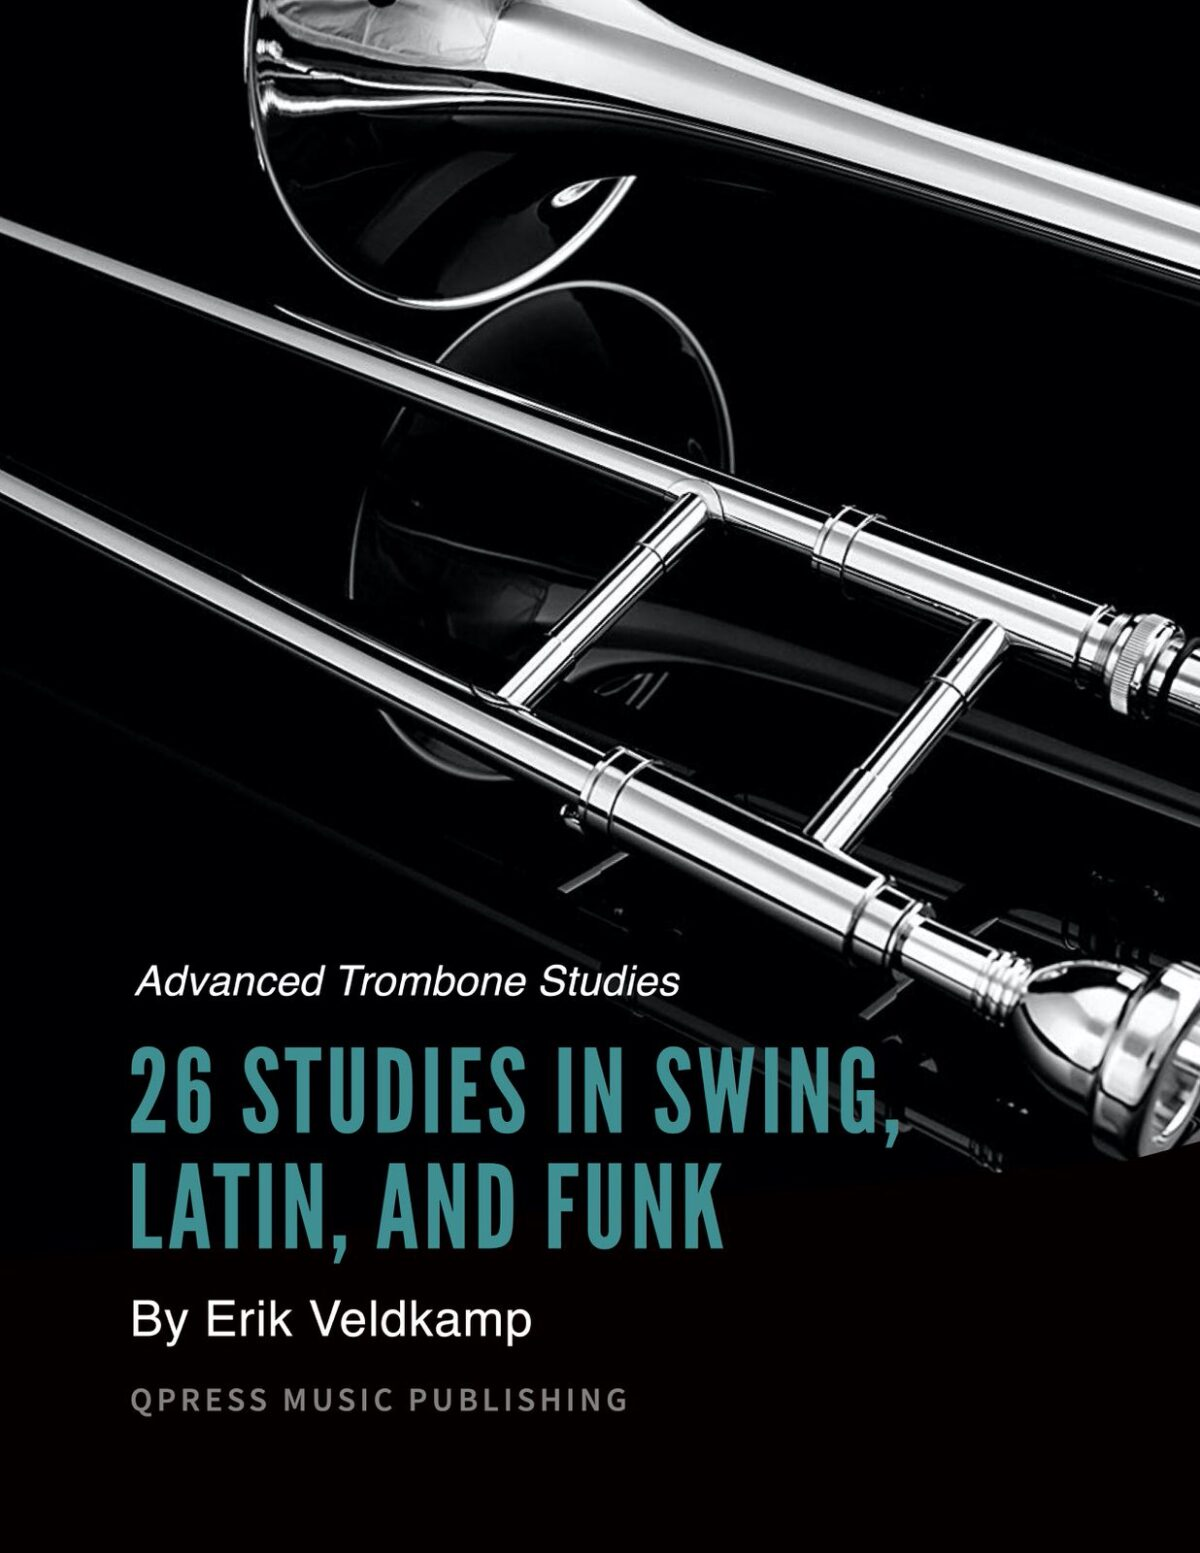 Veldkamp, 26 Etudes in Swing, Latin & Funk-p01